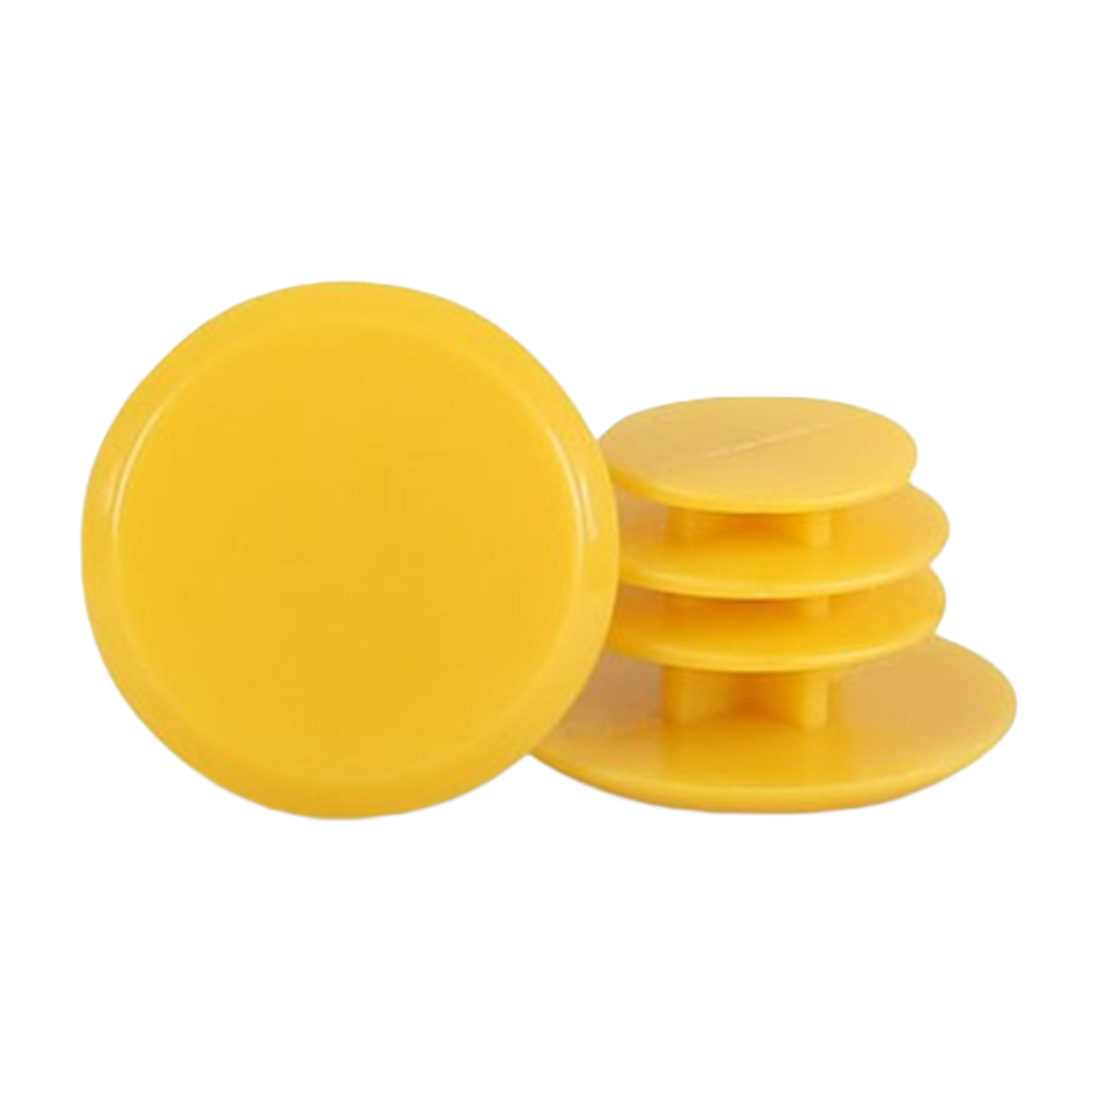 Bicycle Parts Lock-On Plugs Bike Handlebar End Grips Caps Covers Plastic